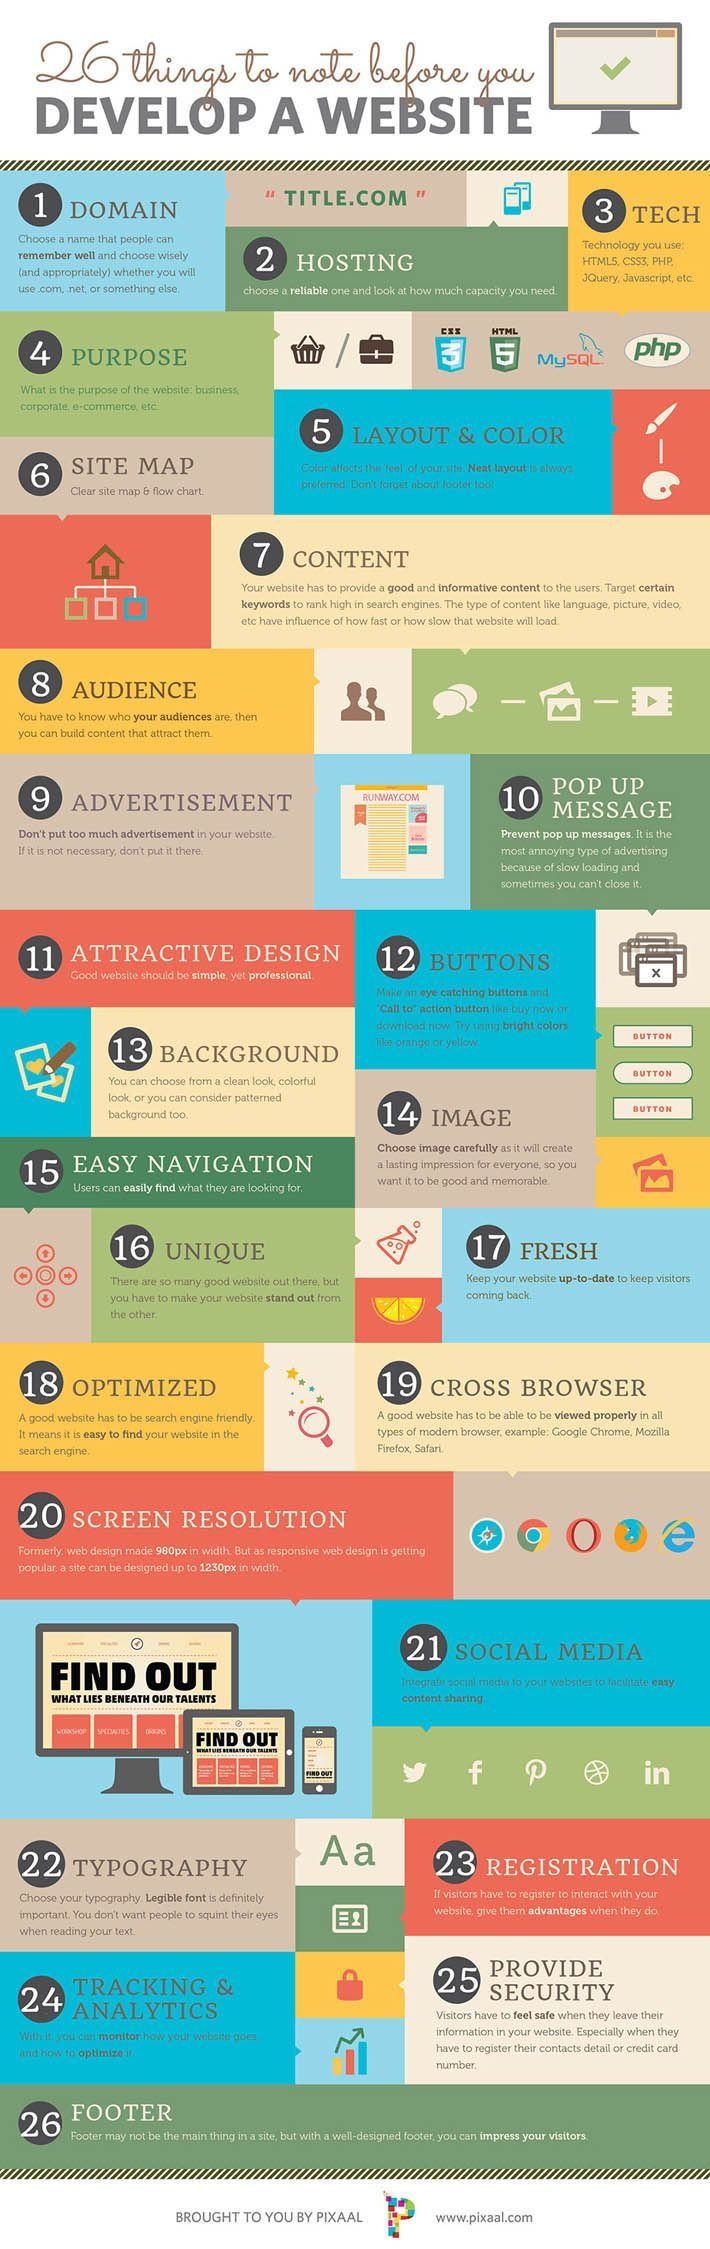 This infographic from Pixaal shows the basic things to consider before someone or company develop a brand new website.